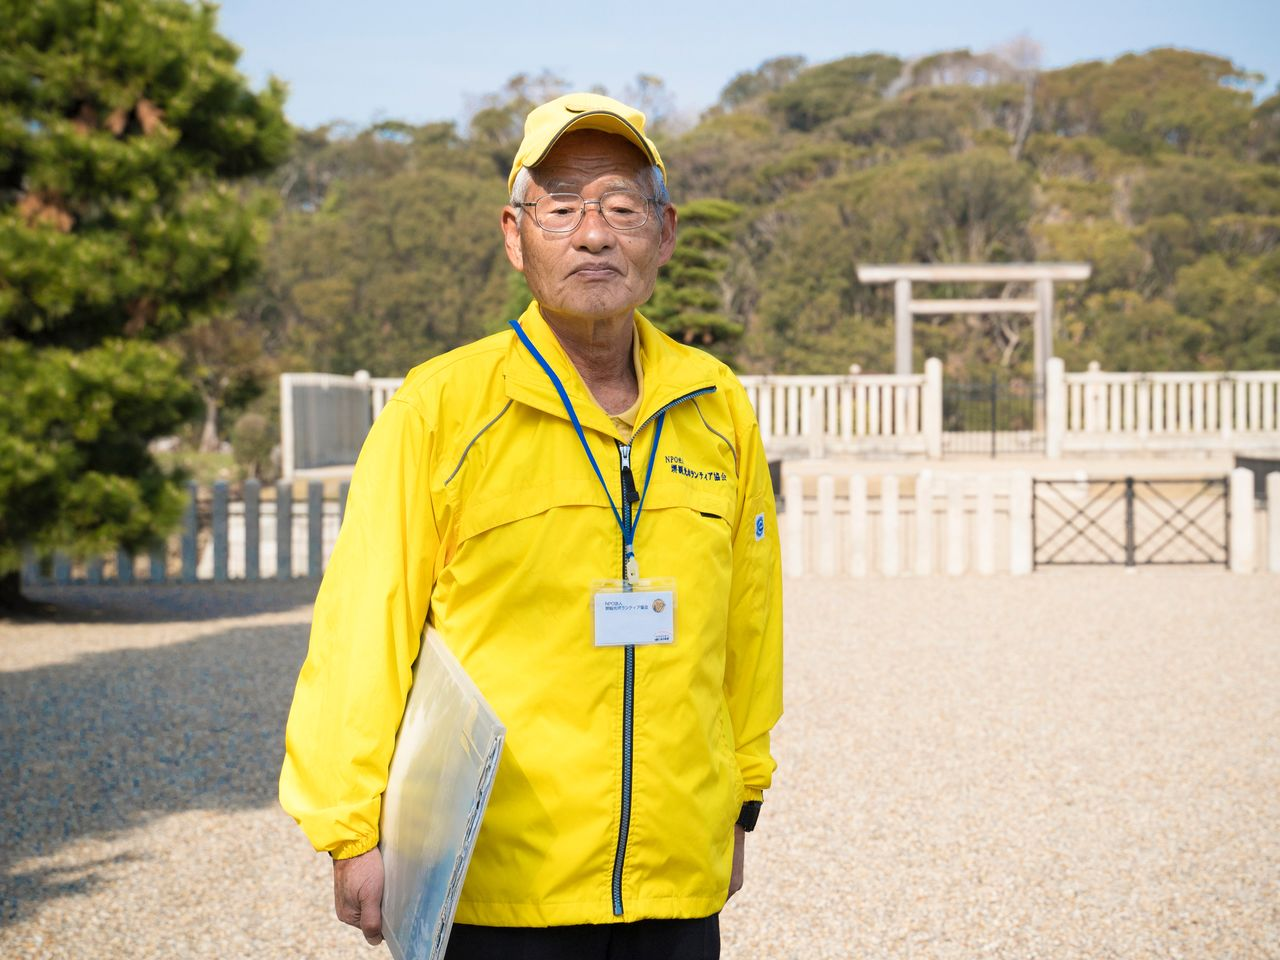 Locals serving as volunteer guides average over 70 years of age, and can be identified by their distinctive yellow caps and windbreakers.